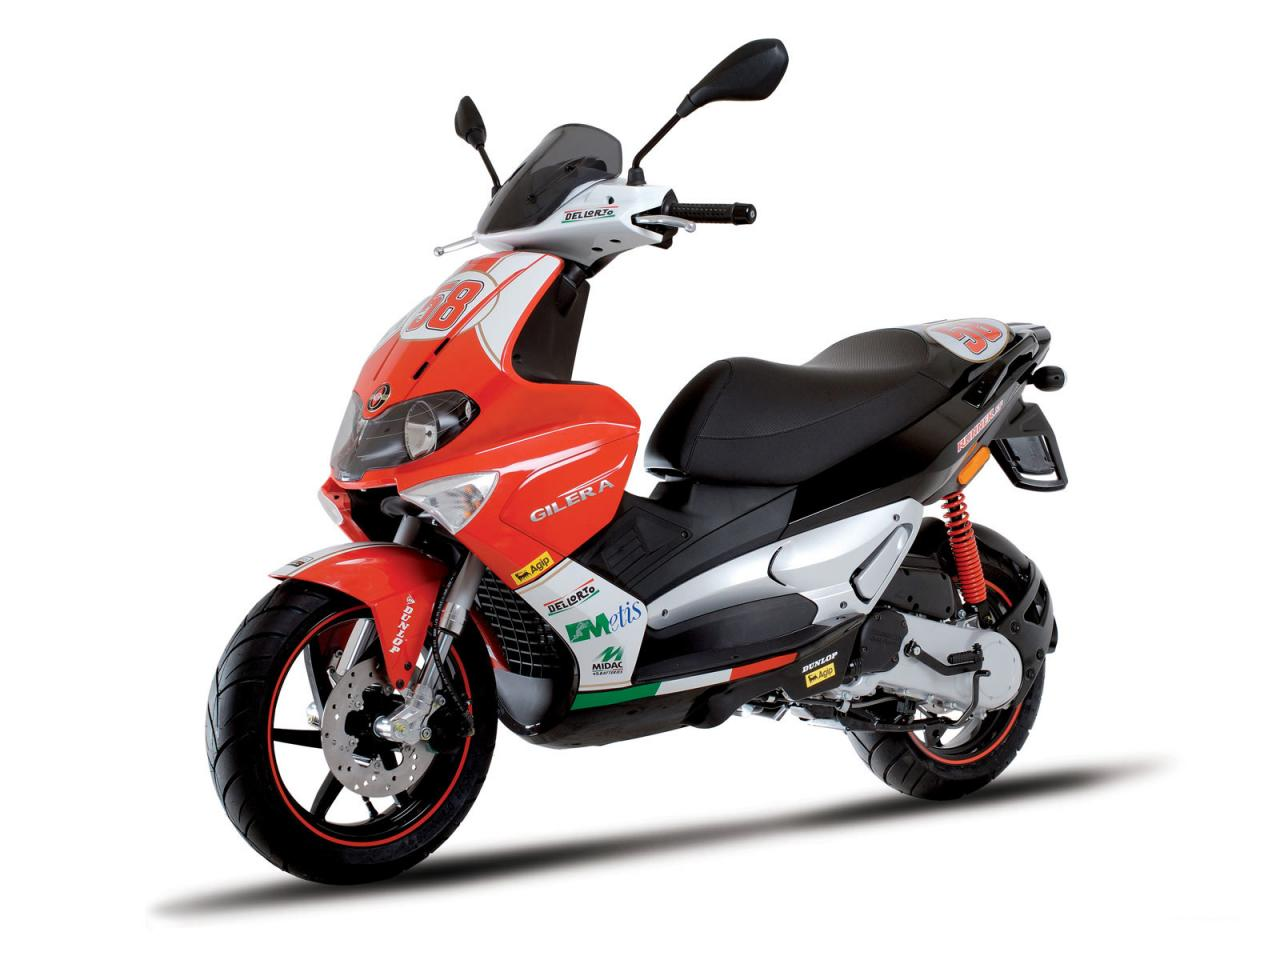 Gilera 50 Runner Racing Replica images #73878